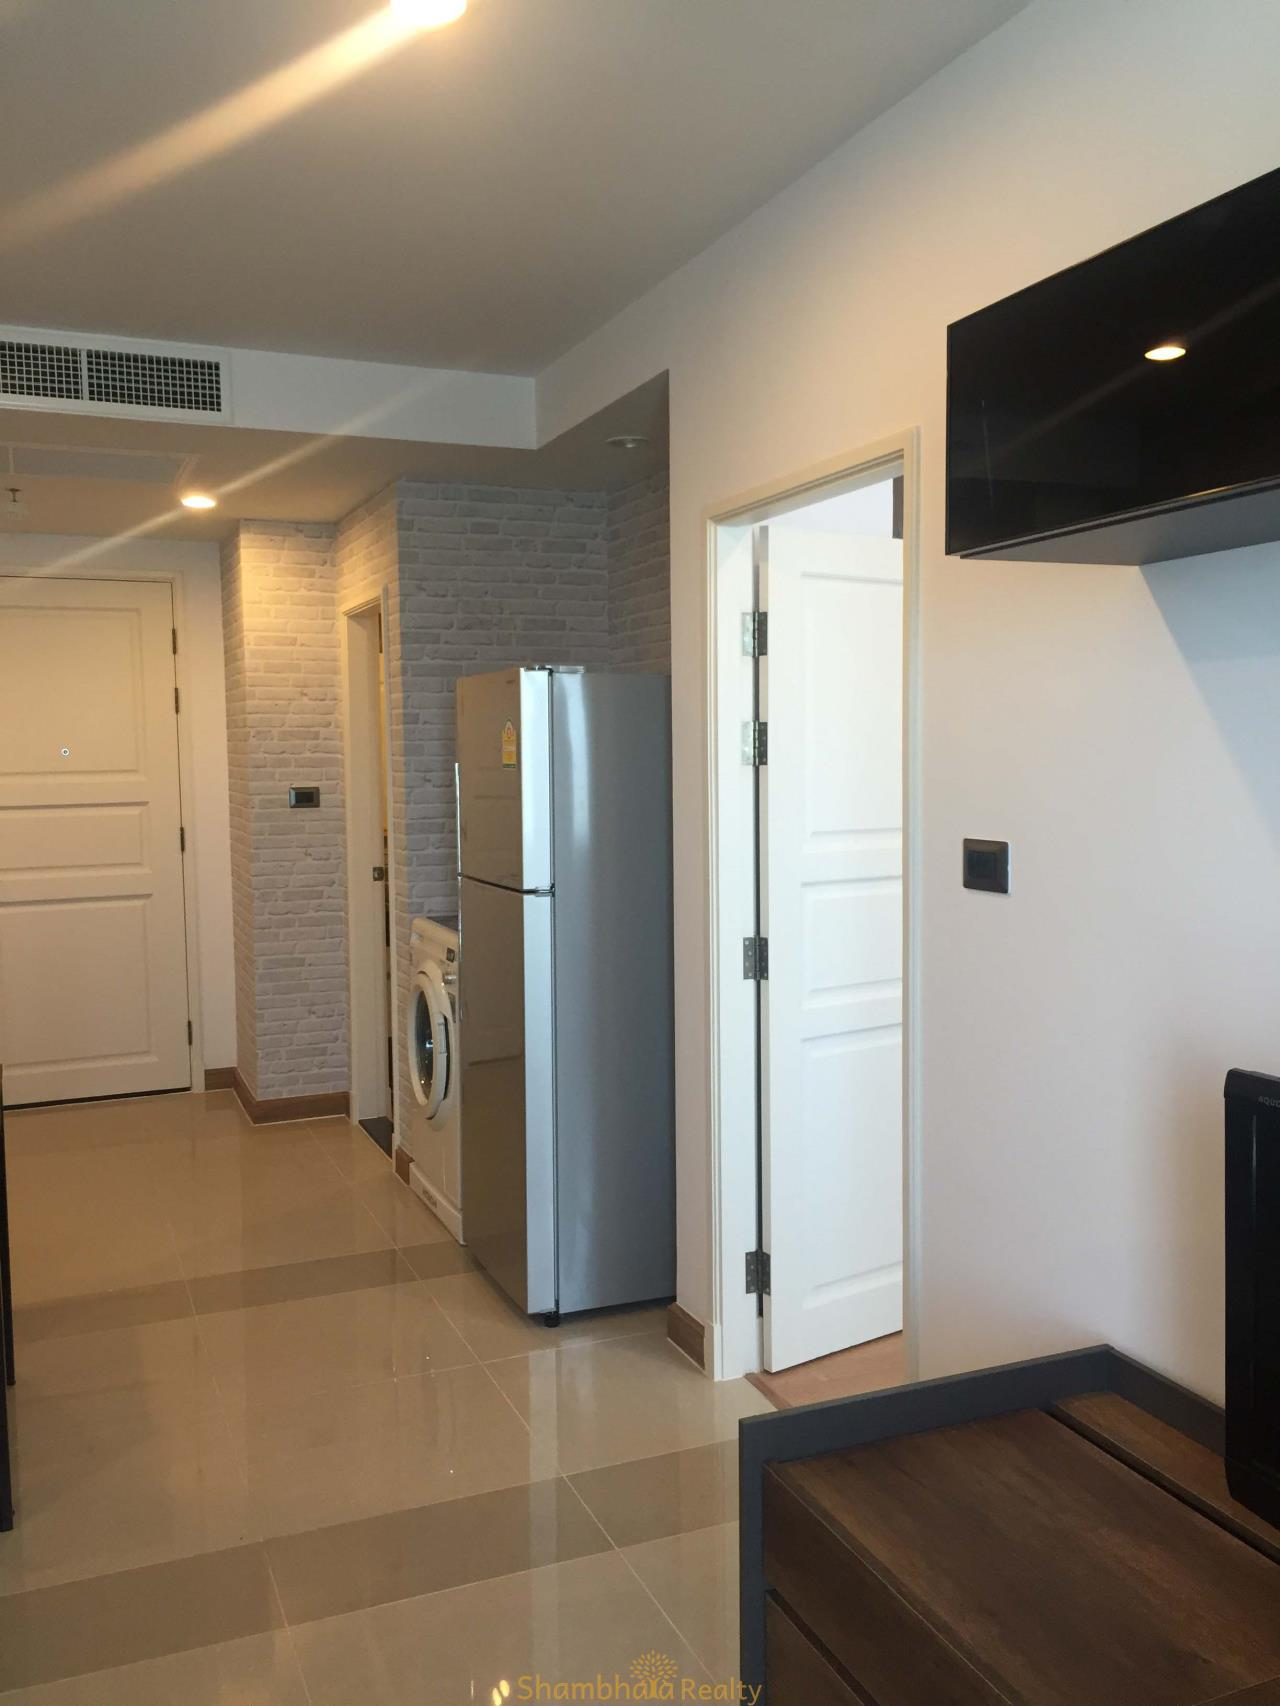 Shambhala Realty Agency's Supalai Wellington Condominium for Rent in Thiam Ruam Mit 27 Rd, Huai Khwang 11